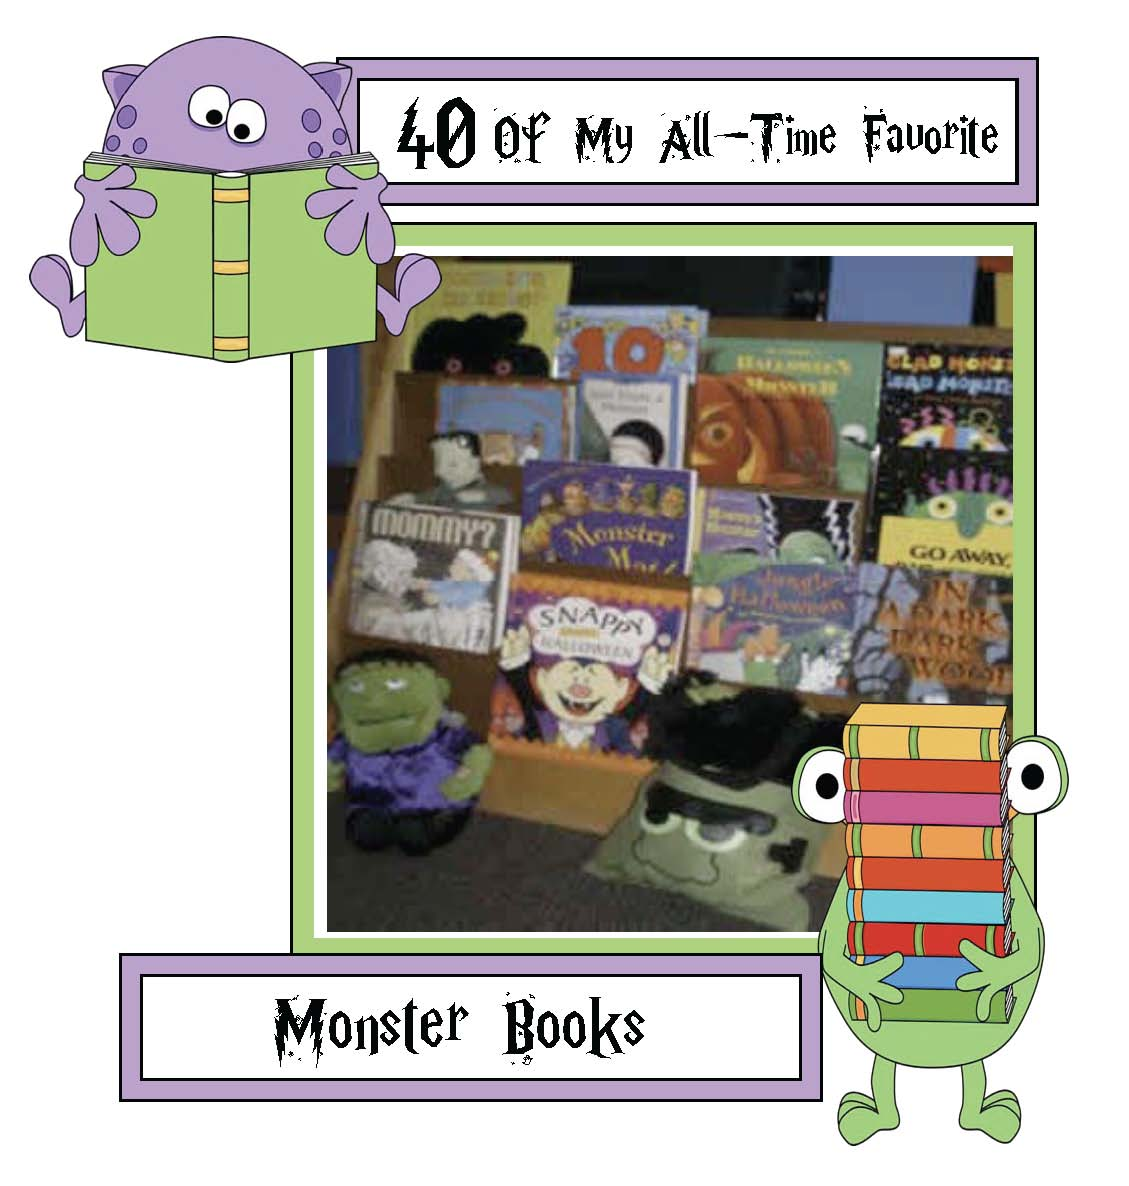 40 all time favorite monster book list, activities to go with go away big green monster, activities to go with glad monster sad monster, counting up to 100 activities, counting up to 120 activities, 100 day activities with a monster theme, monster books, monster activities, monster counting, monster math, monster centers, monster games, easy reader monster booklets, monster shapes, shape activities, common core monsters, monster crafts, monster mask template, counting monsters